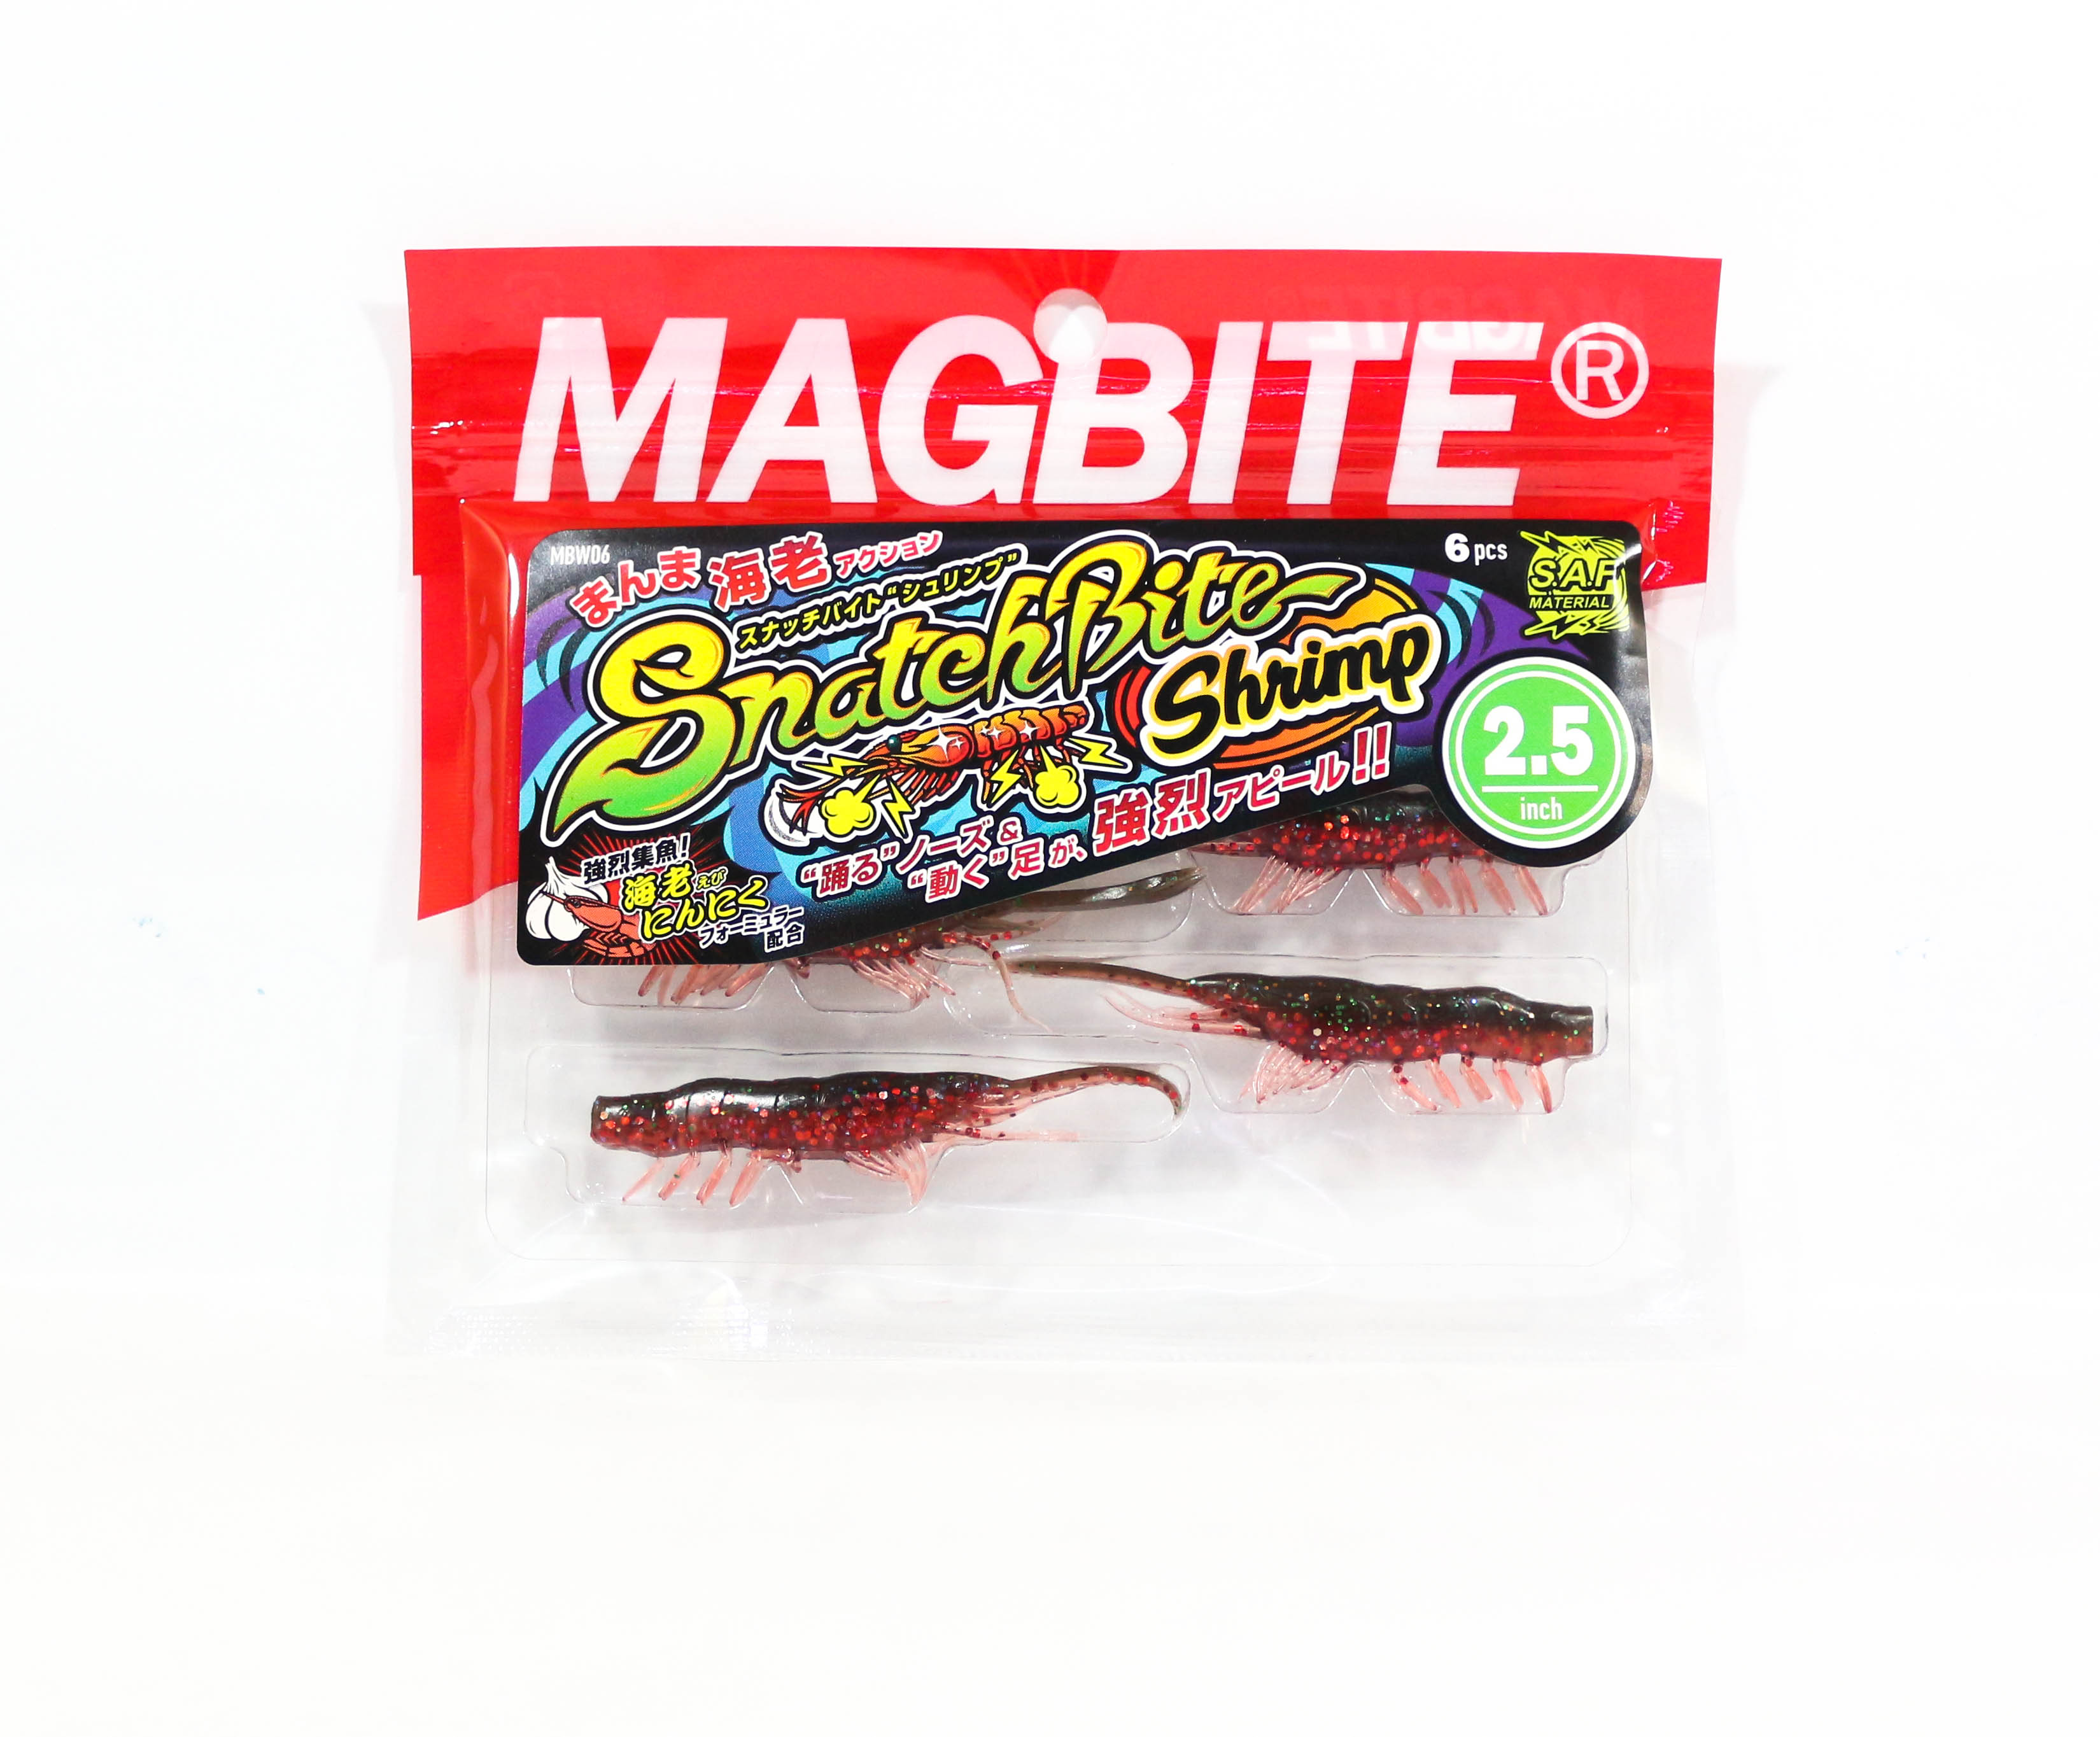 Harimitsu Mag Bite Snatch Shrimp 2.5 Inch 6 per pack 10 (6560)